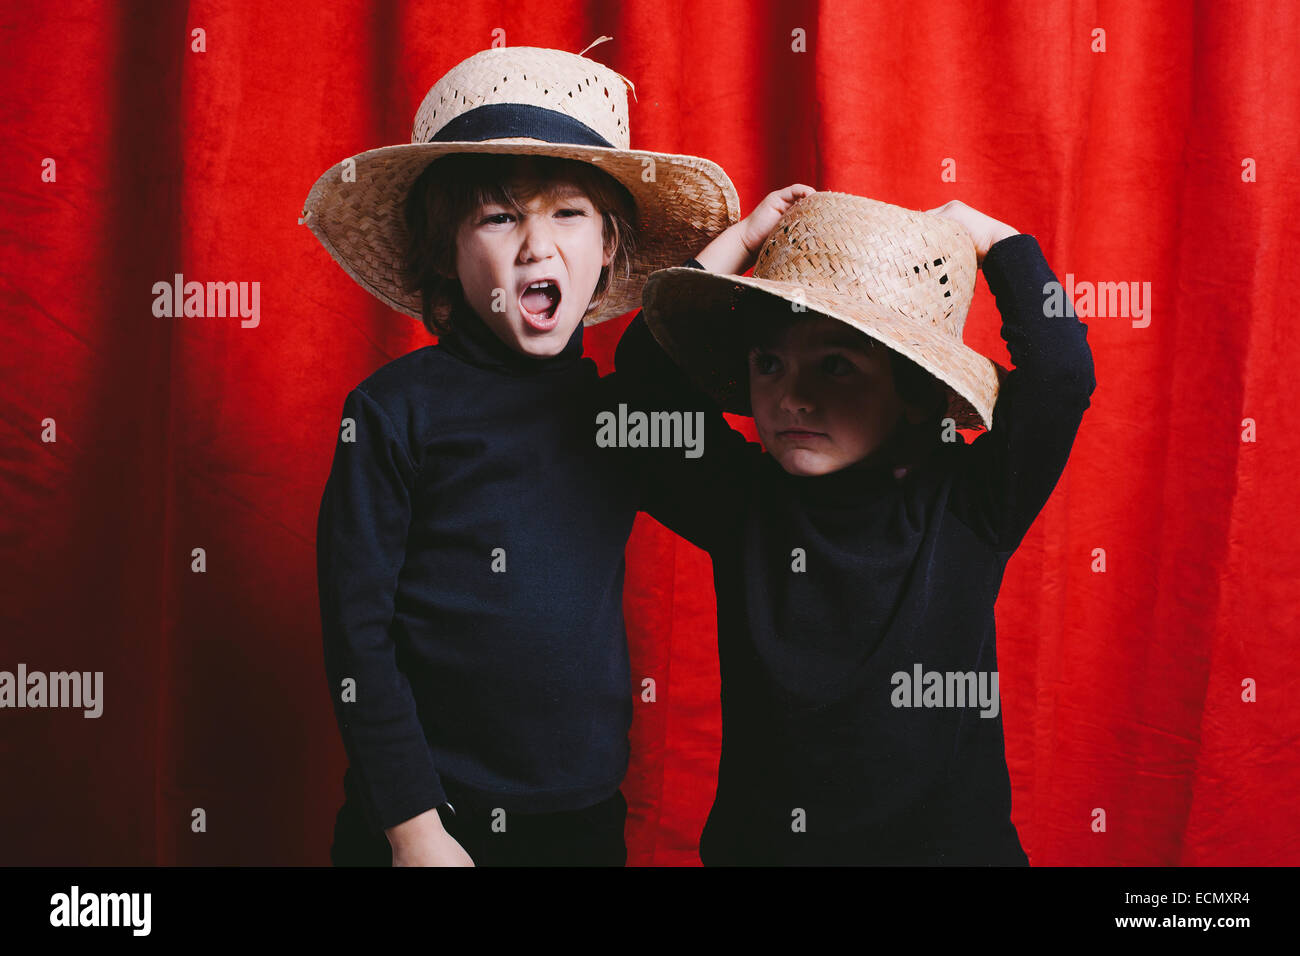 Studio portrait of two boys wearing black clothes and a straw hat - Stock Image